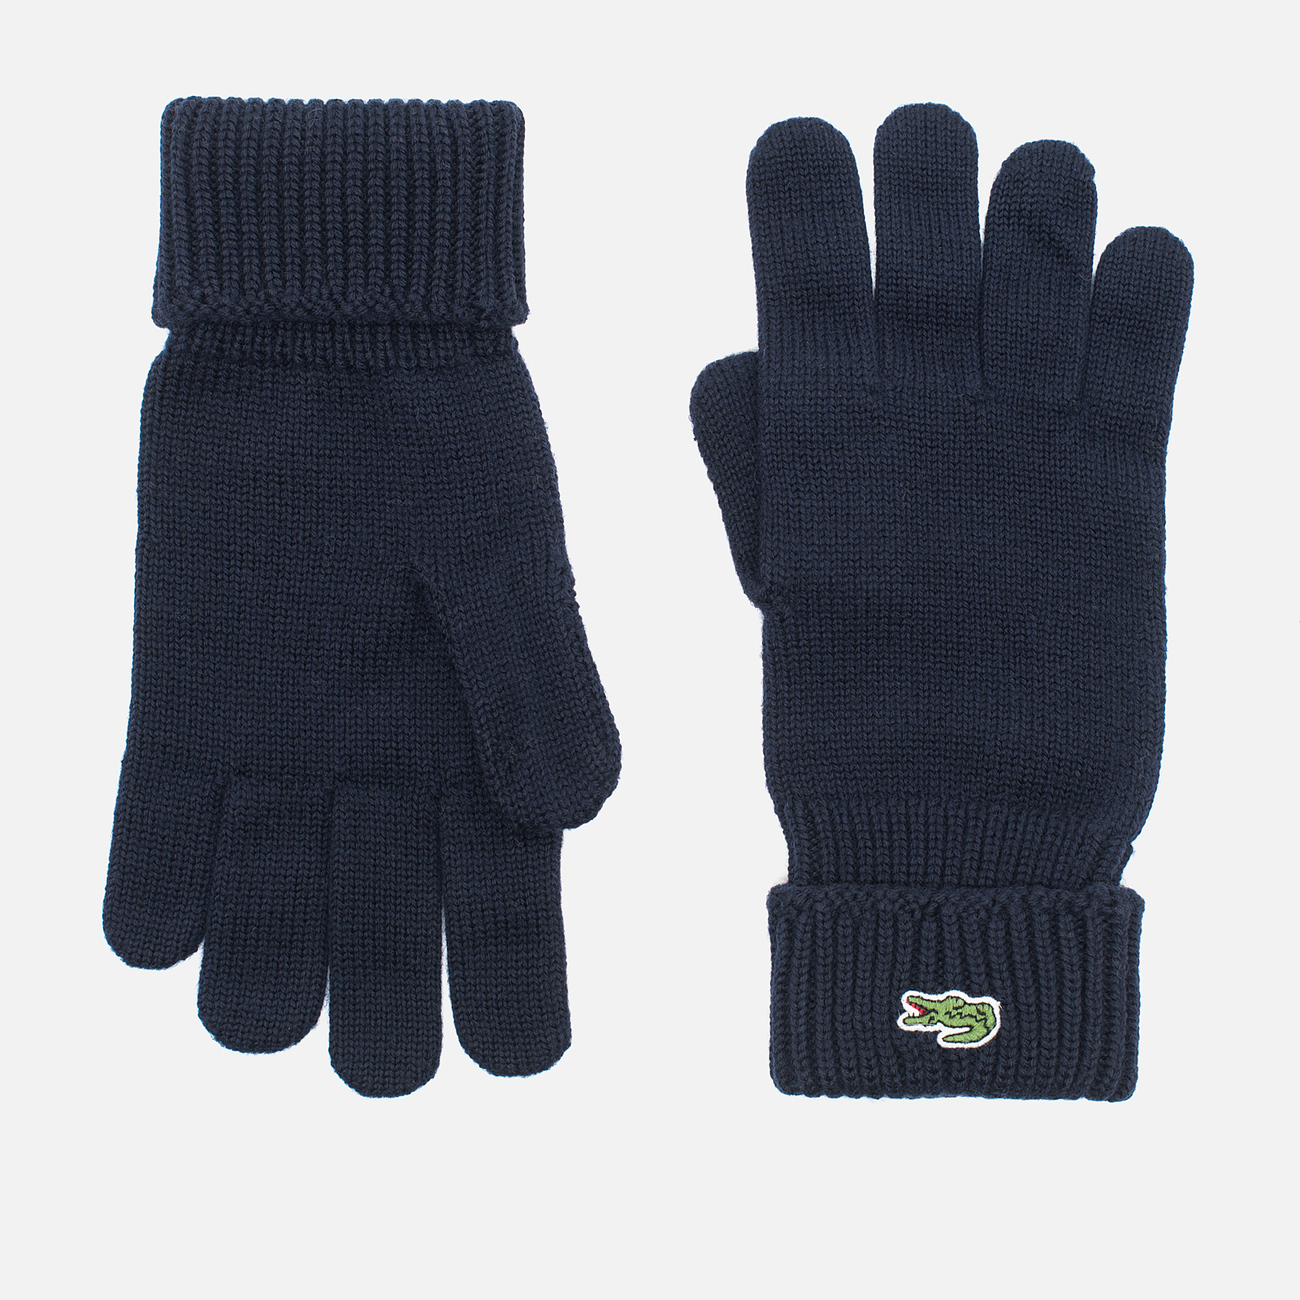 Перчатки Lacoste Green Croc Wool Navy